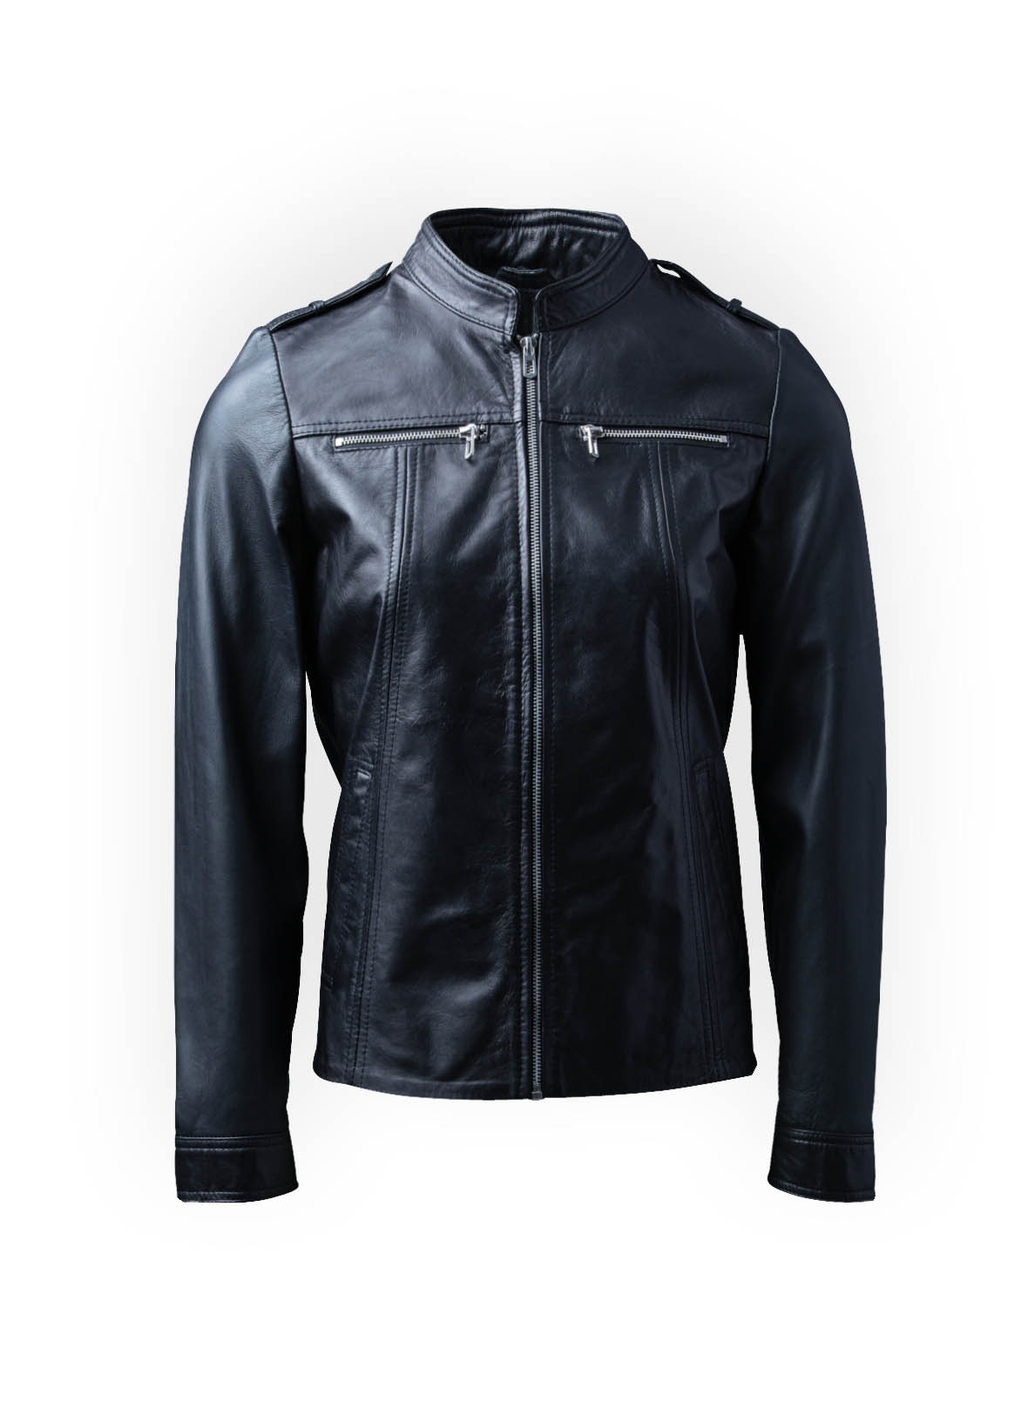 Tarn Leather Jacket in Black